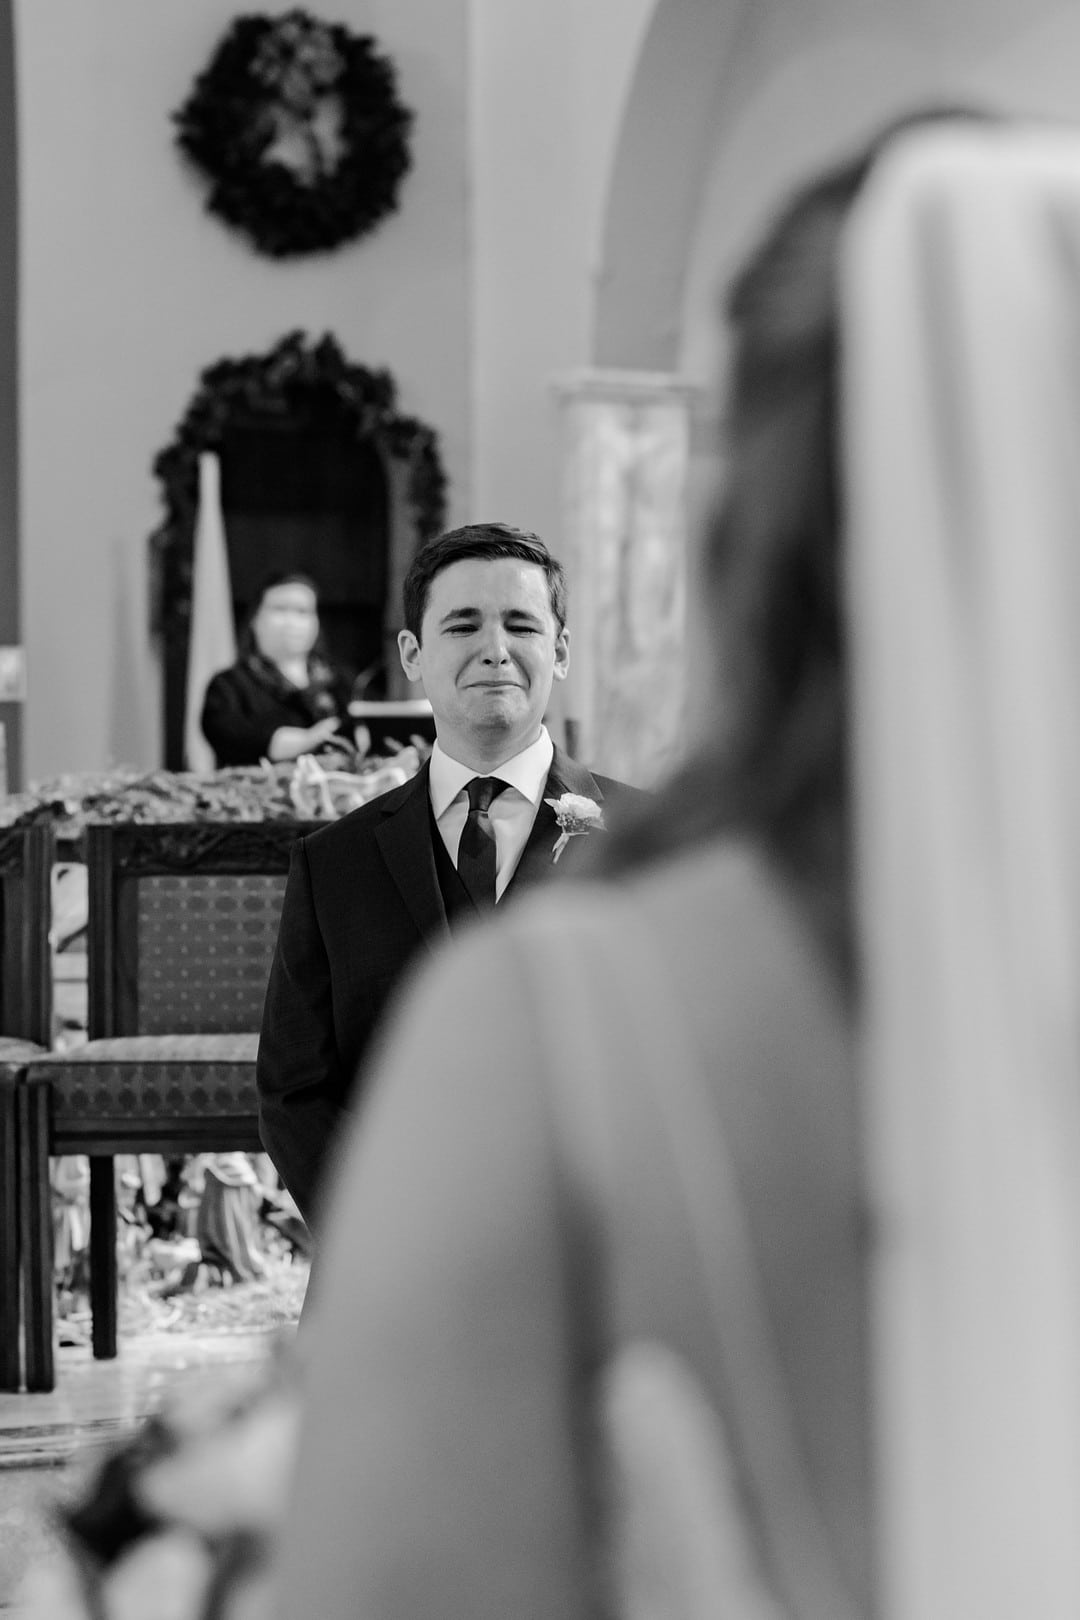 black and white image looking over brides shoulder as groom sees bride come down the aisle crying